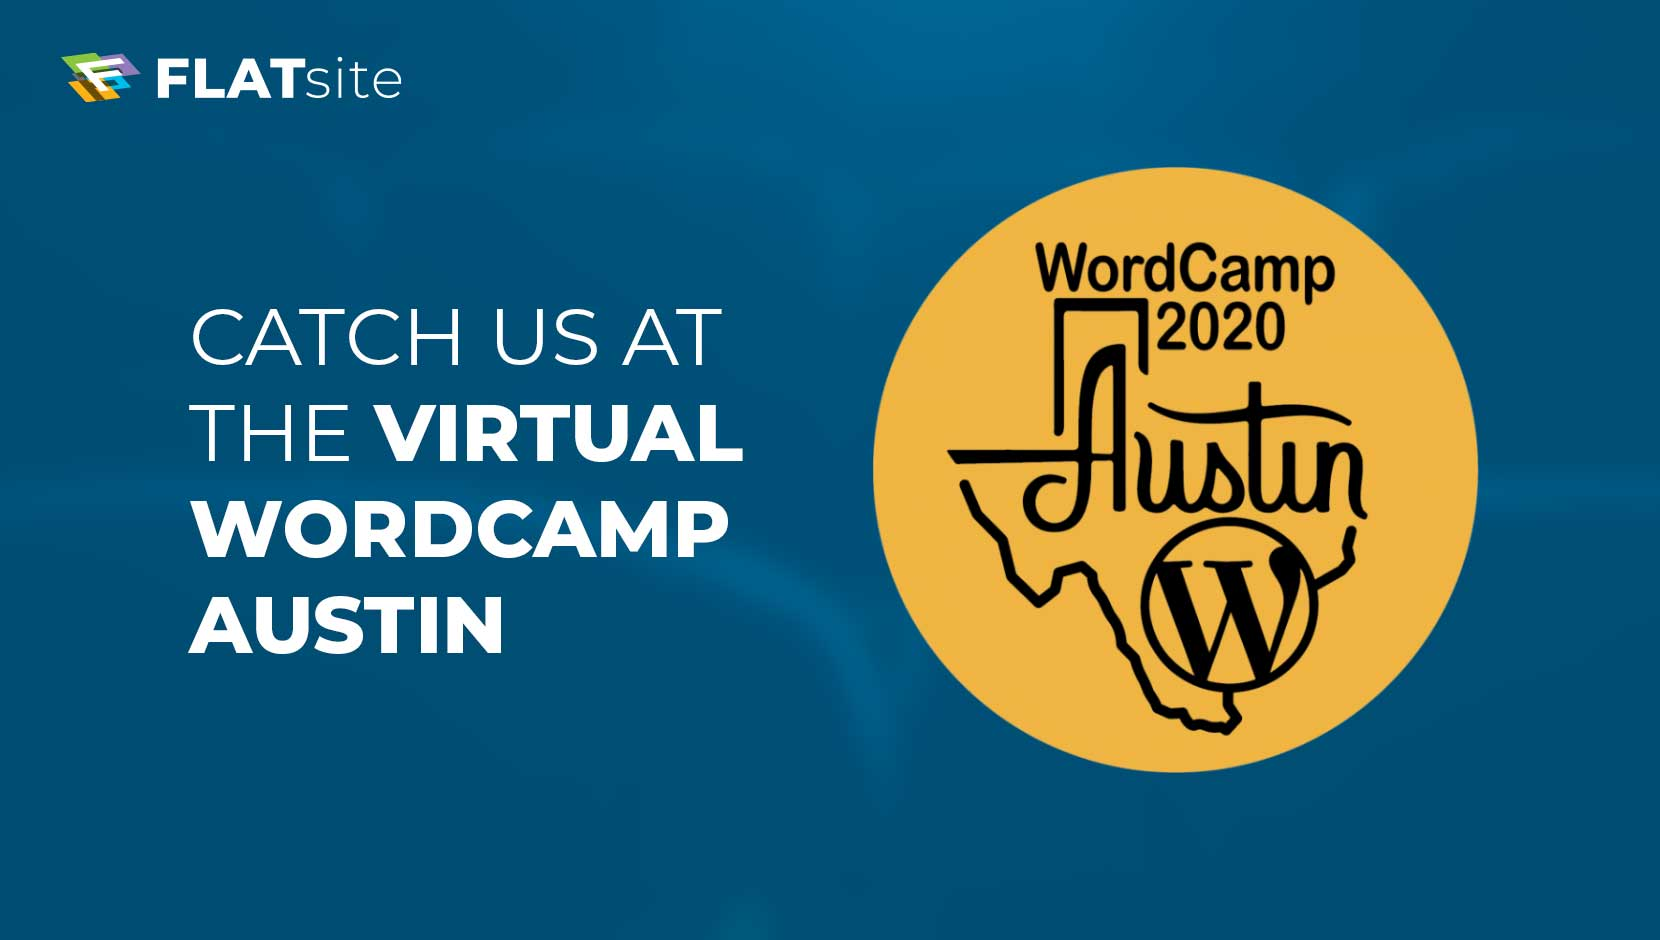 Catch us at the Virtual WordCamp Austin